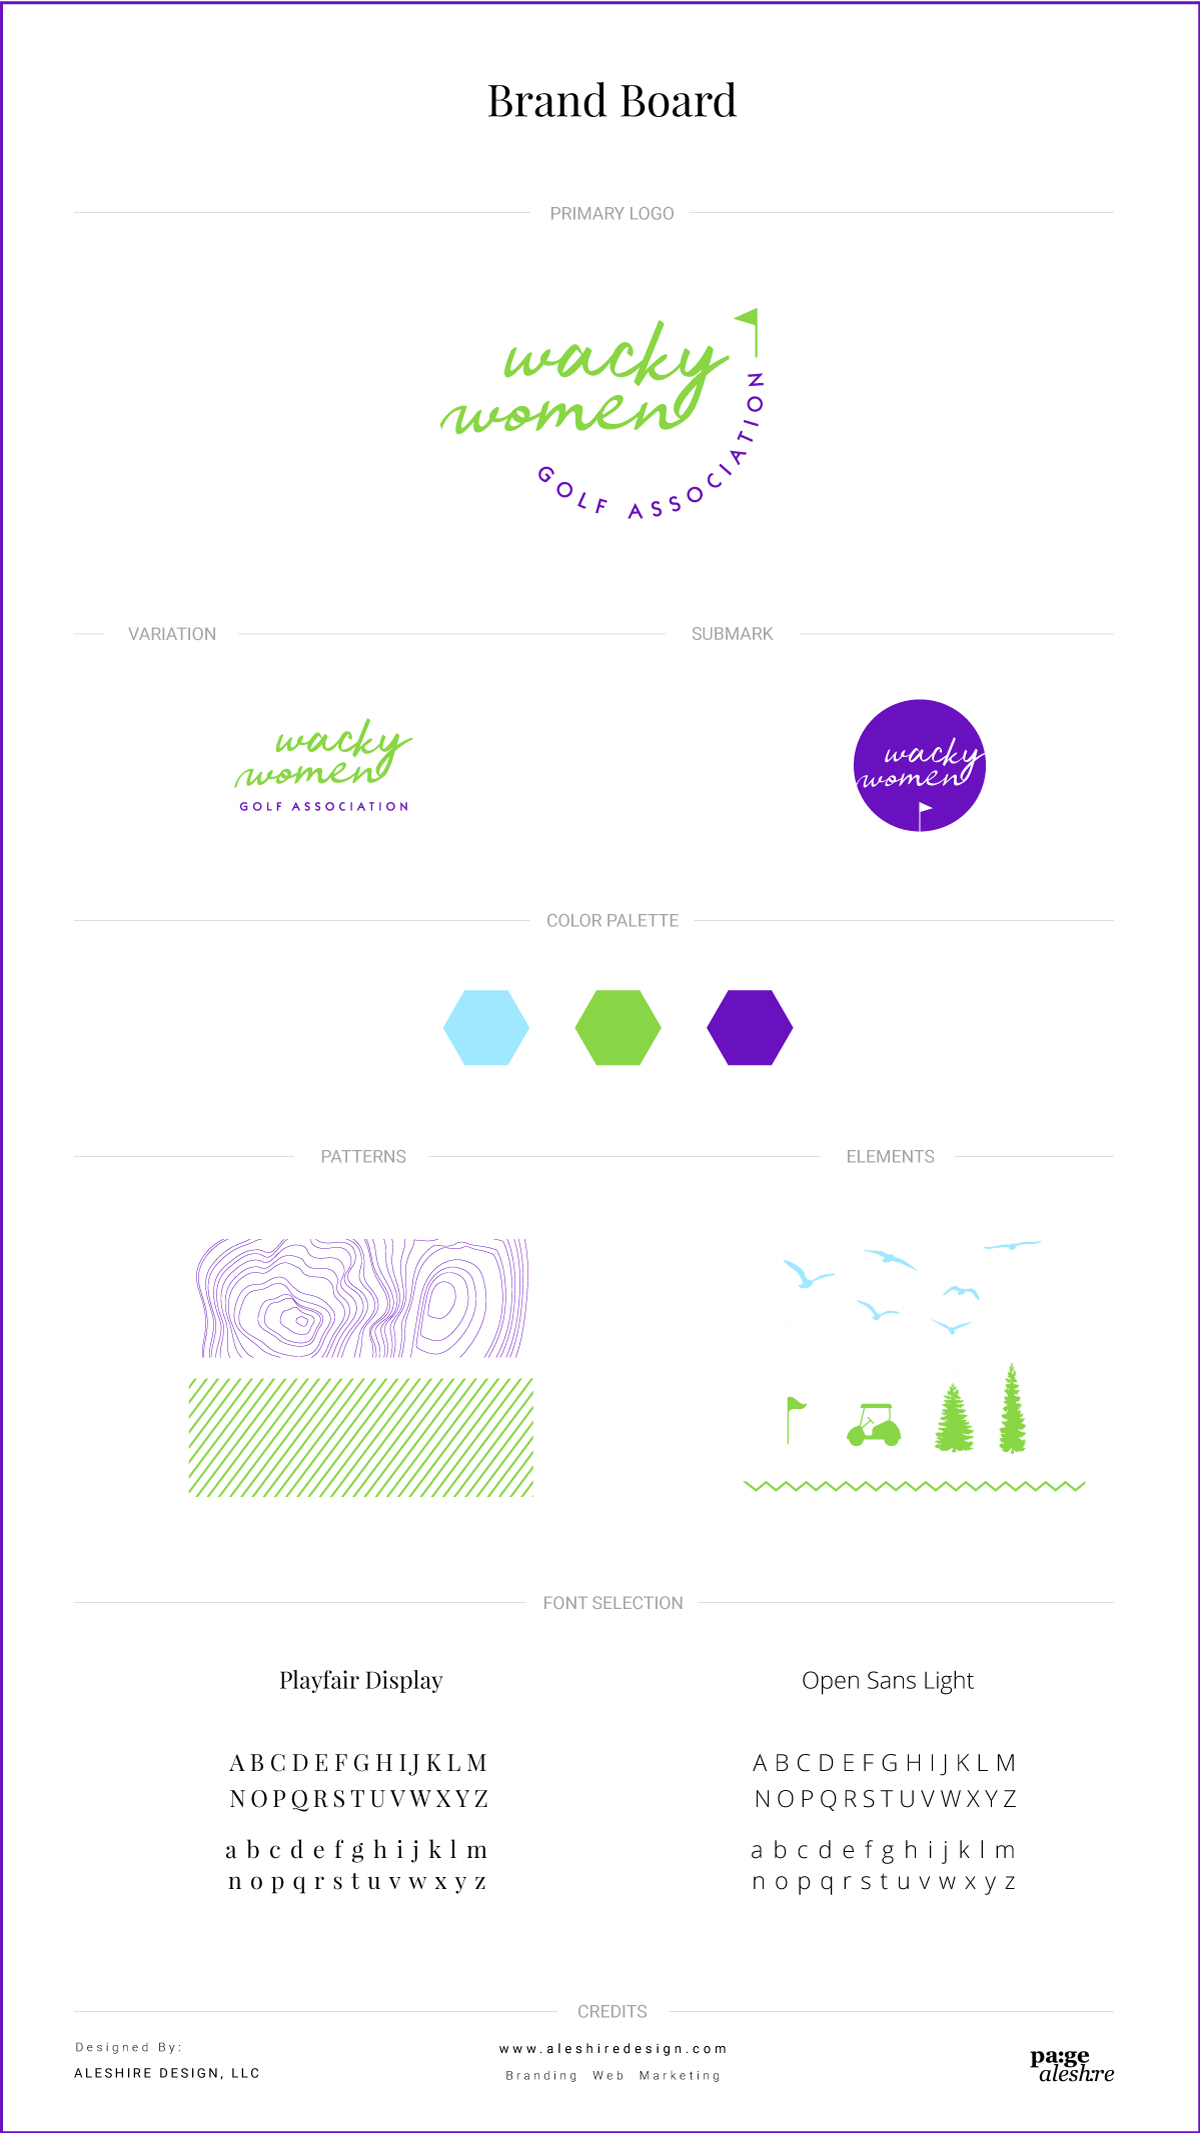 Brand-Board-Outline-1200x2113